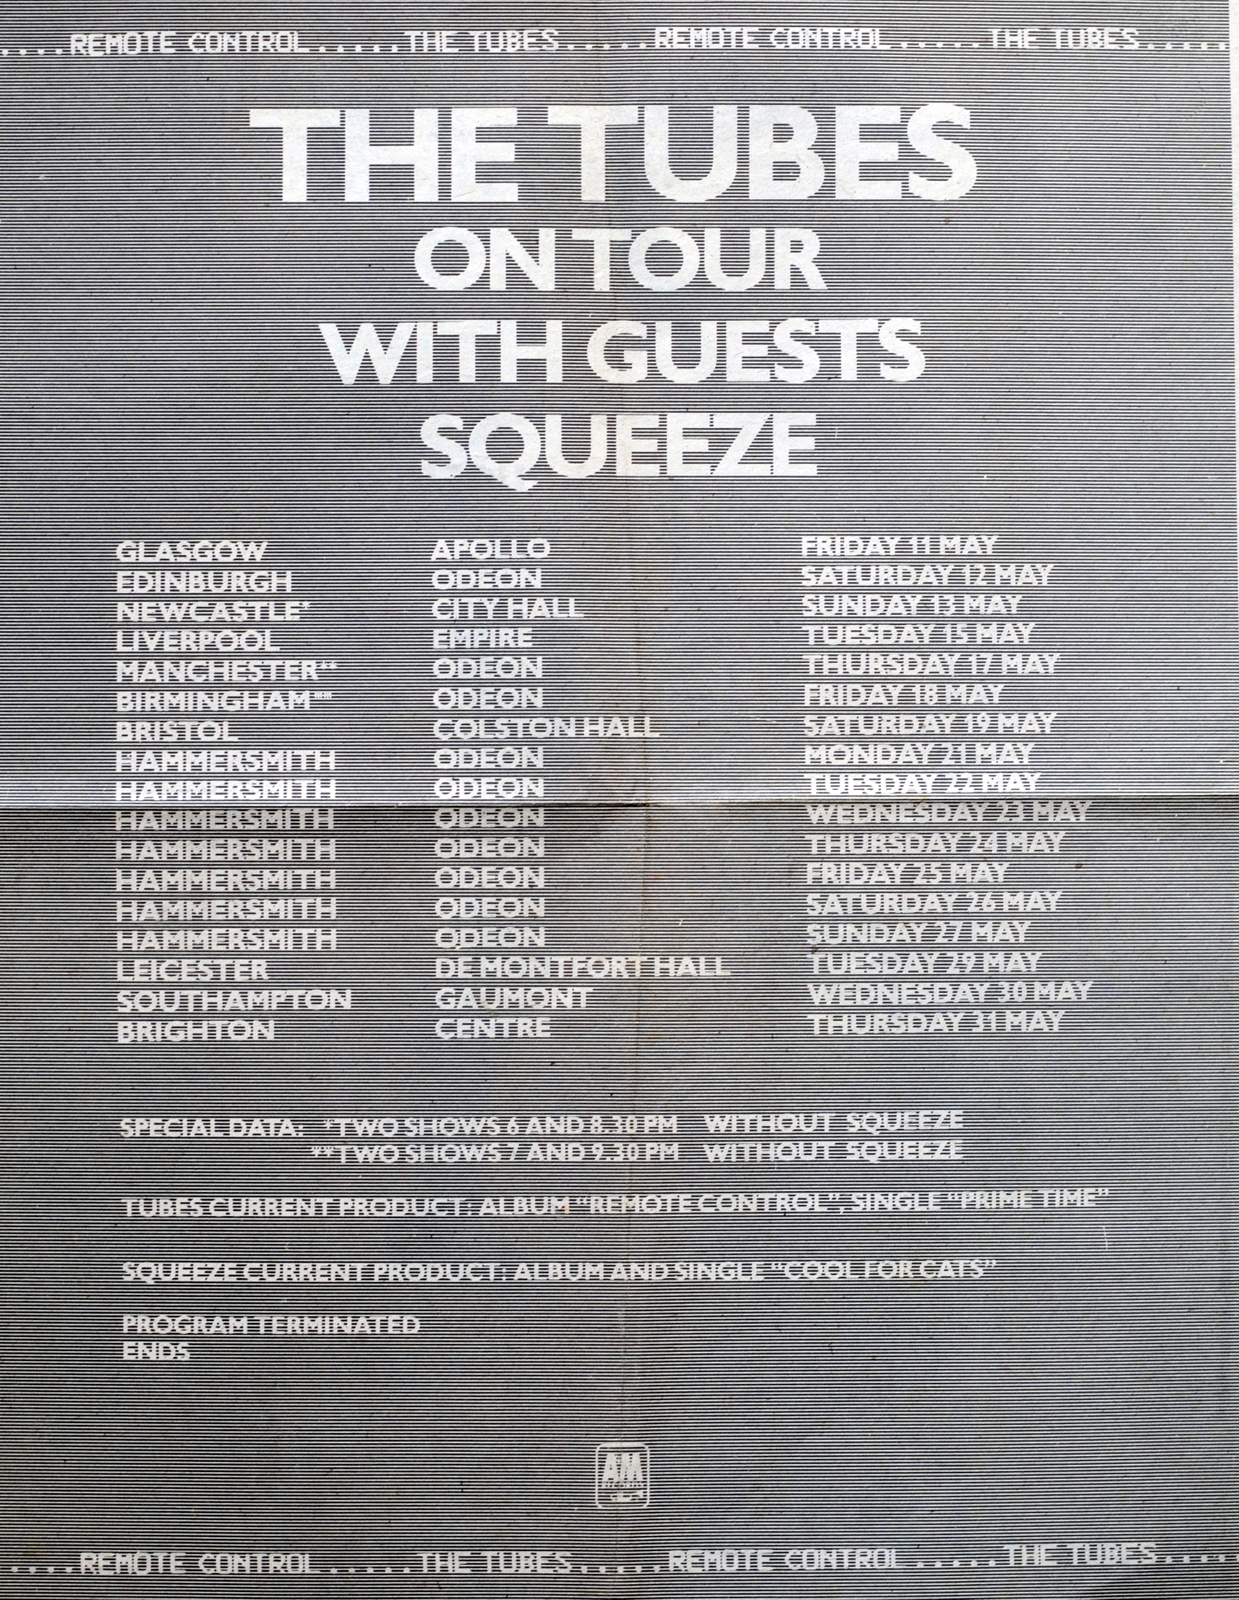 1978 Tour with The Tubes